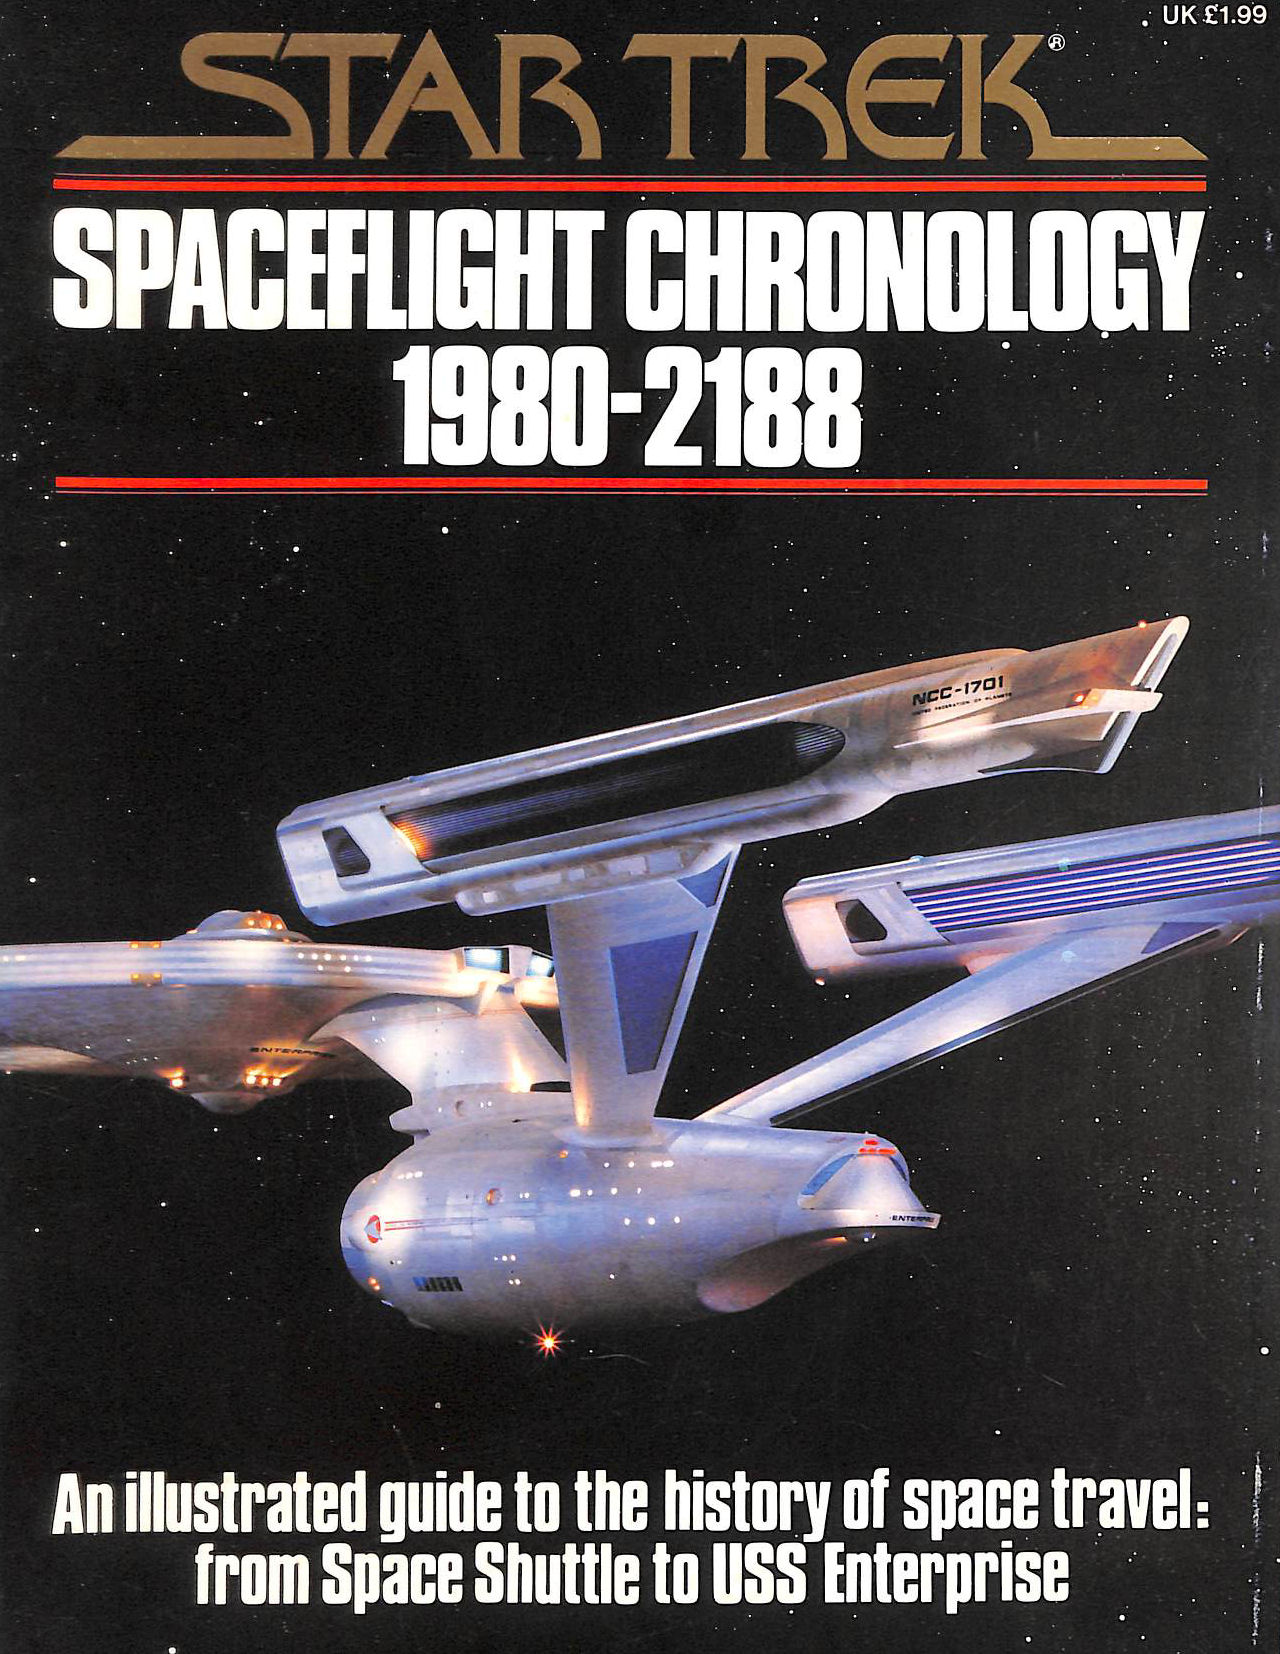 Image for Star Trek Spaceflight Chronology 1980-2188